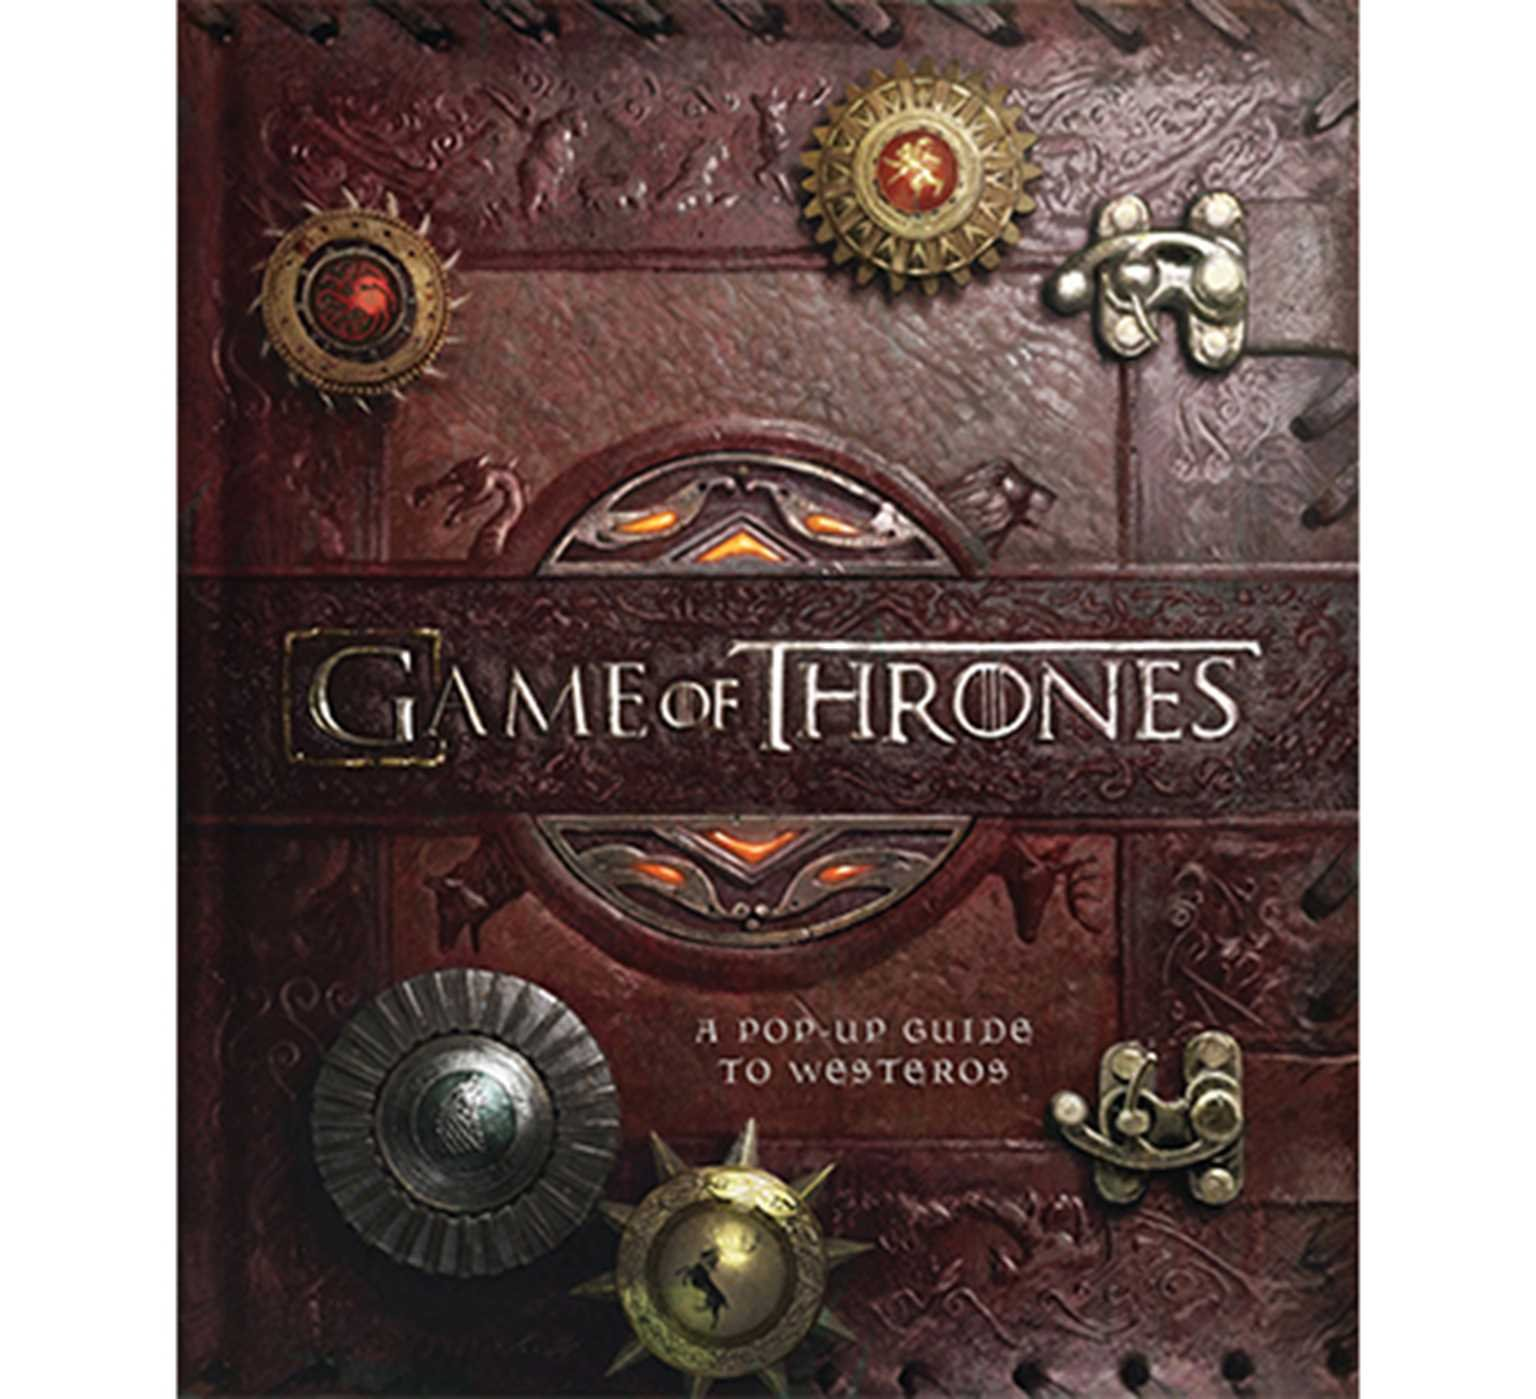 GAME OF THRONES: Amazon.es: MATTHEW REINHART: Libros en idiomas extranjeros